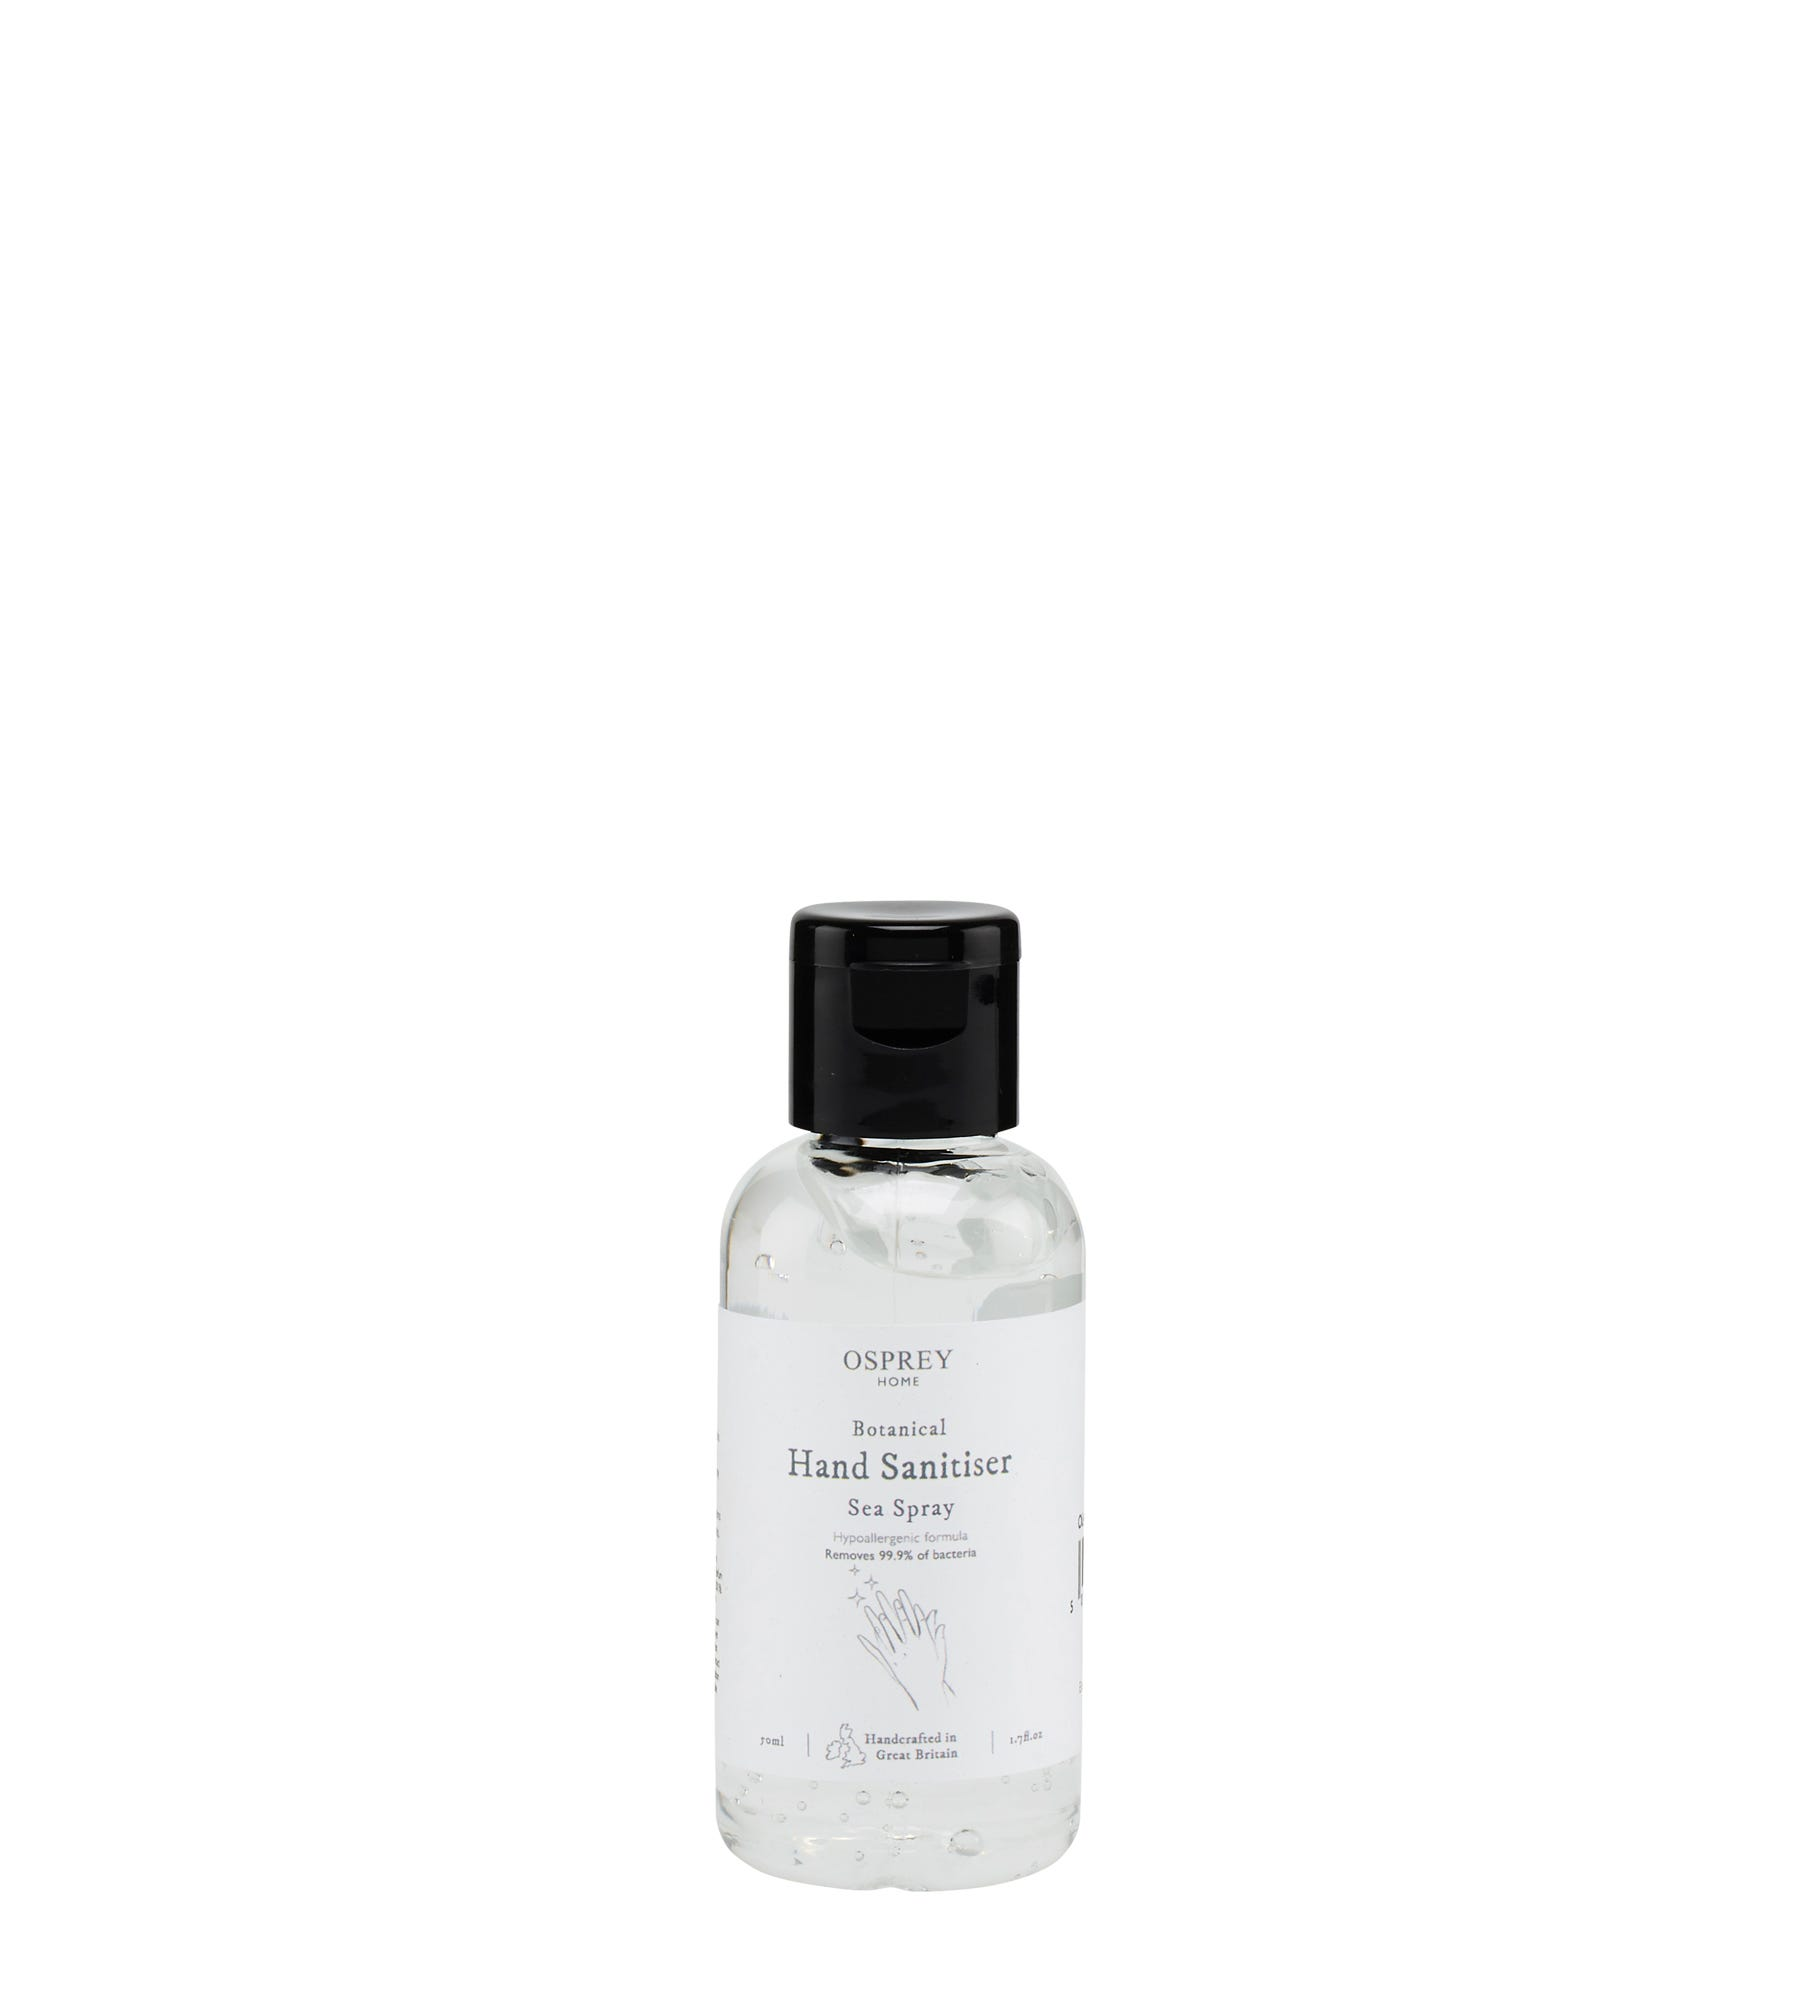 An image of Botanical Hand Sanitiser 50ml PET